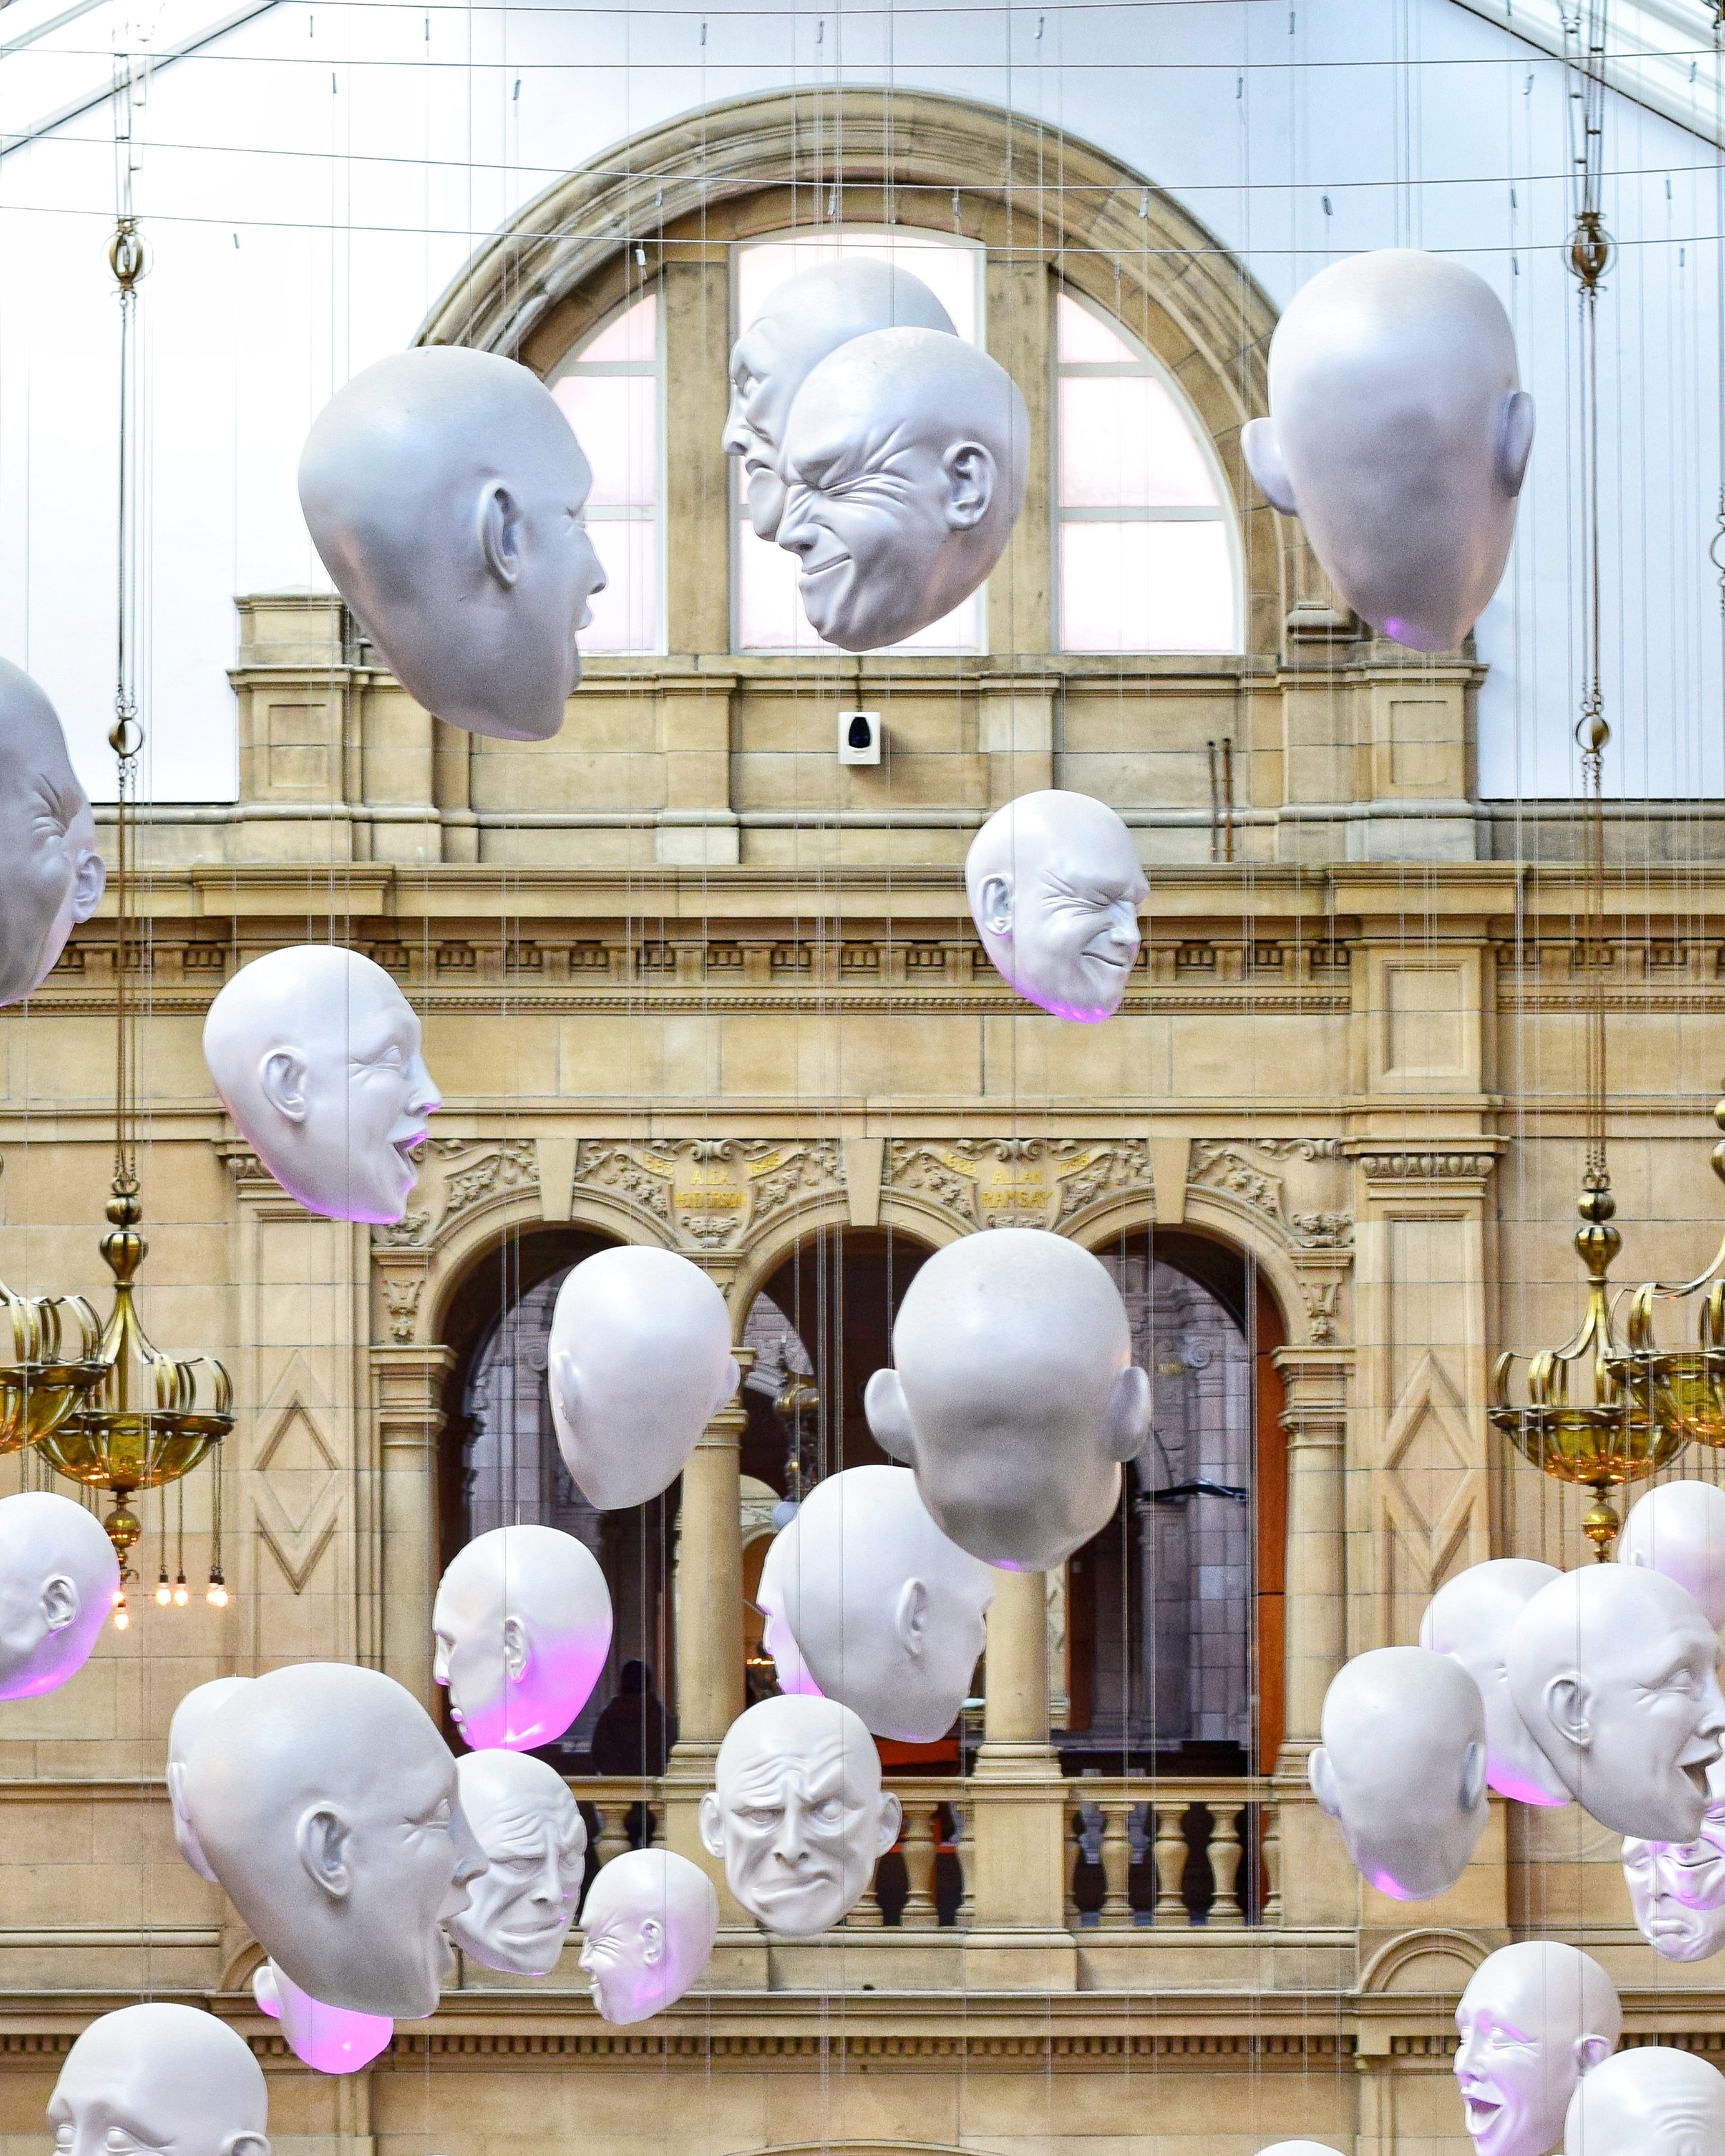 Over My Head, Kelvingrove Art Gallery and Museum, Glasgow